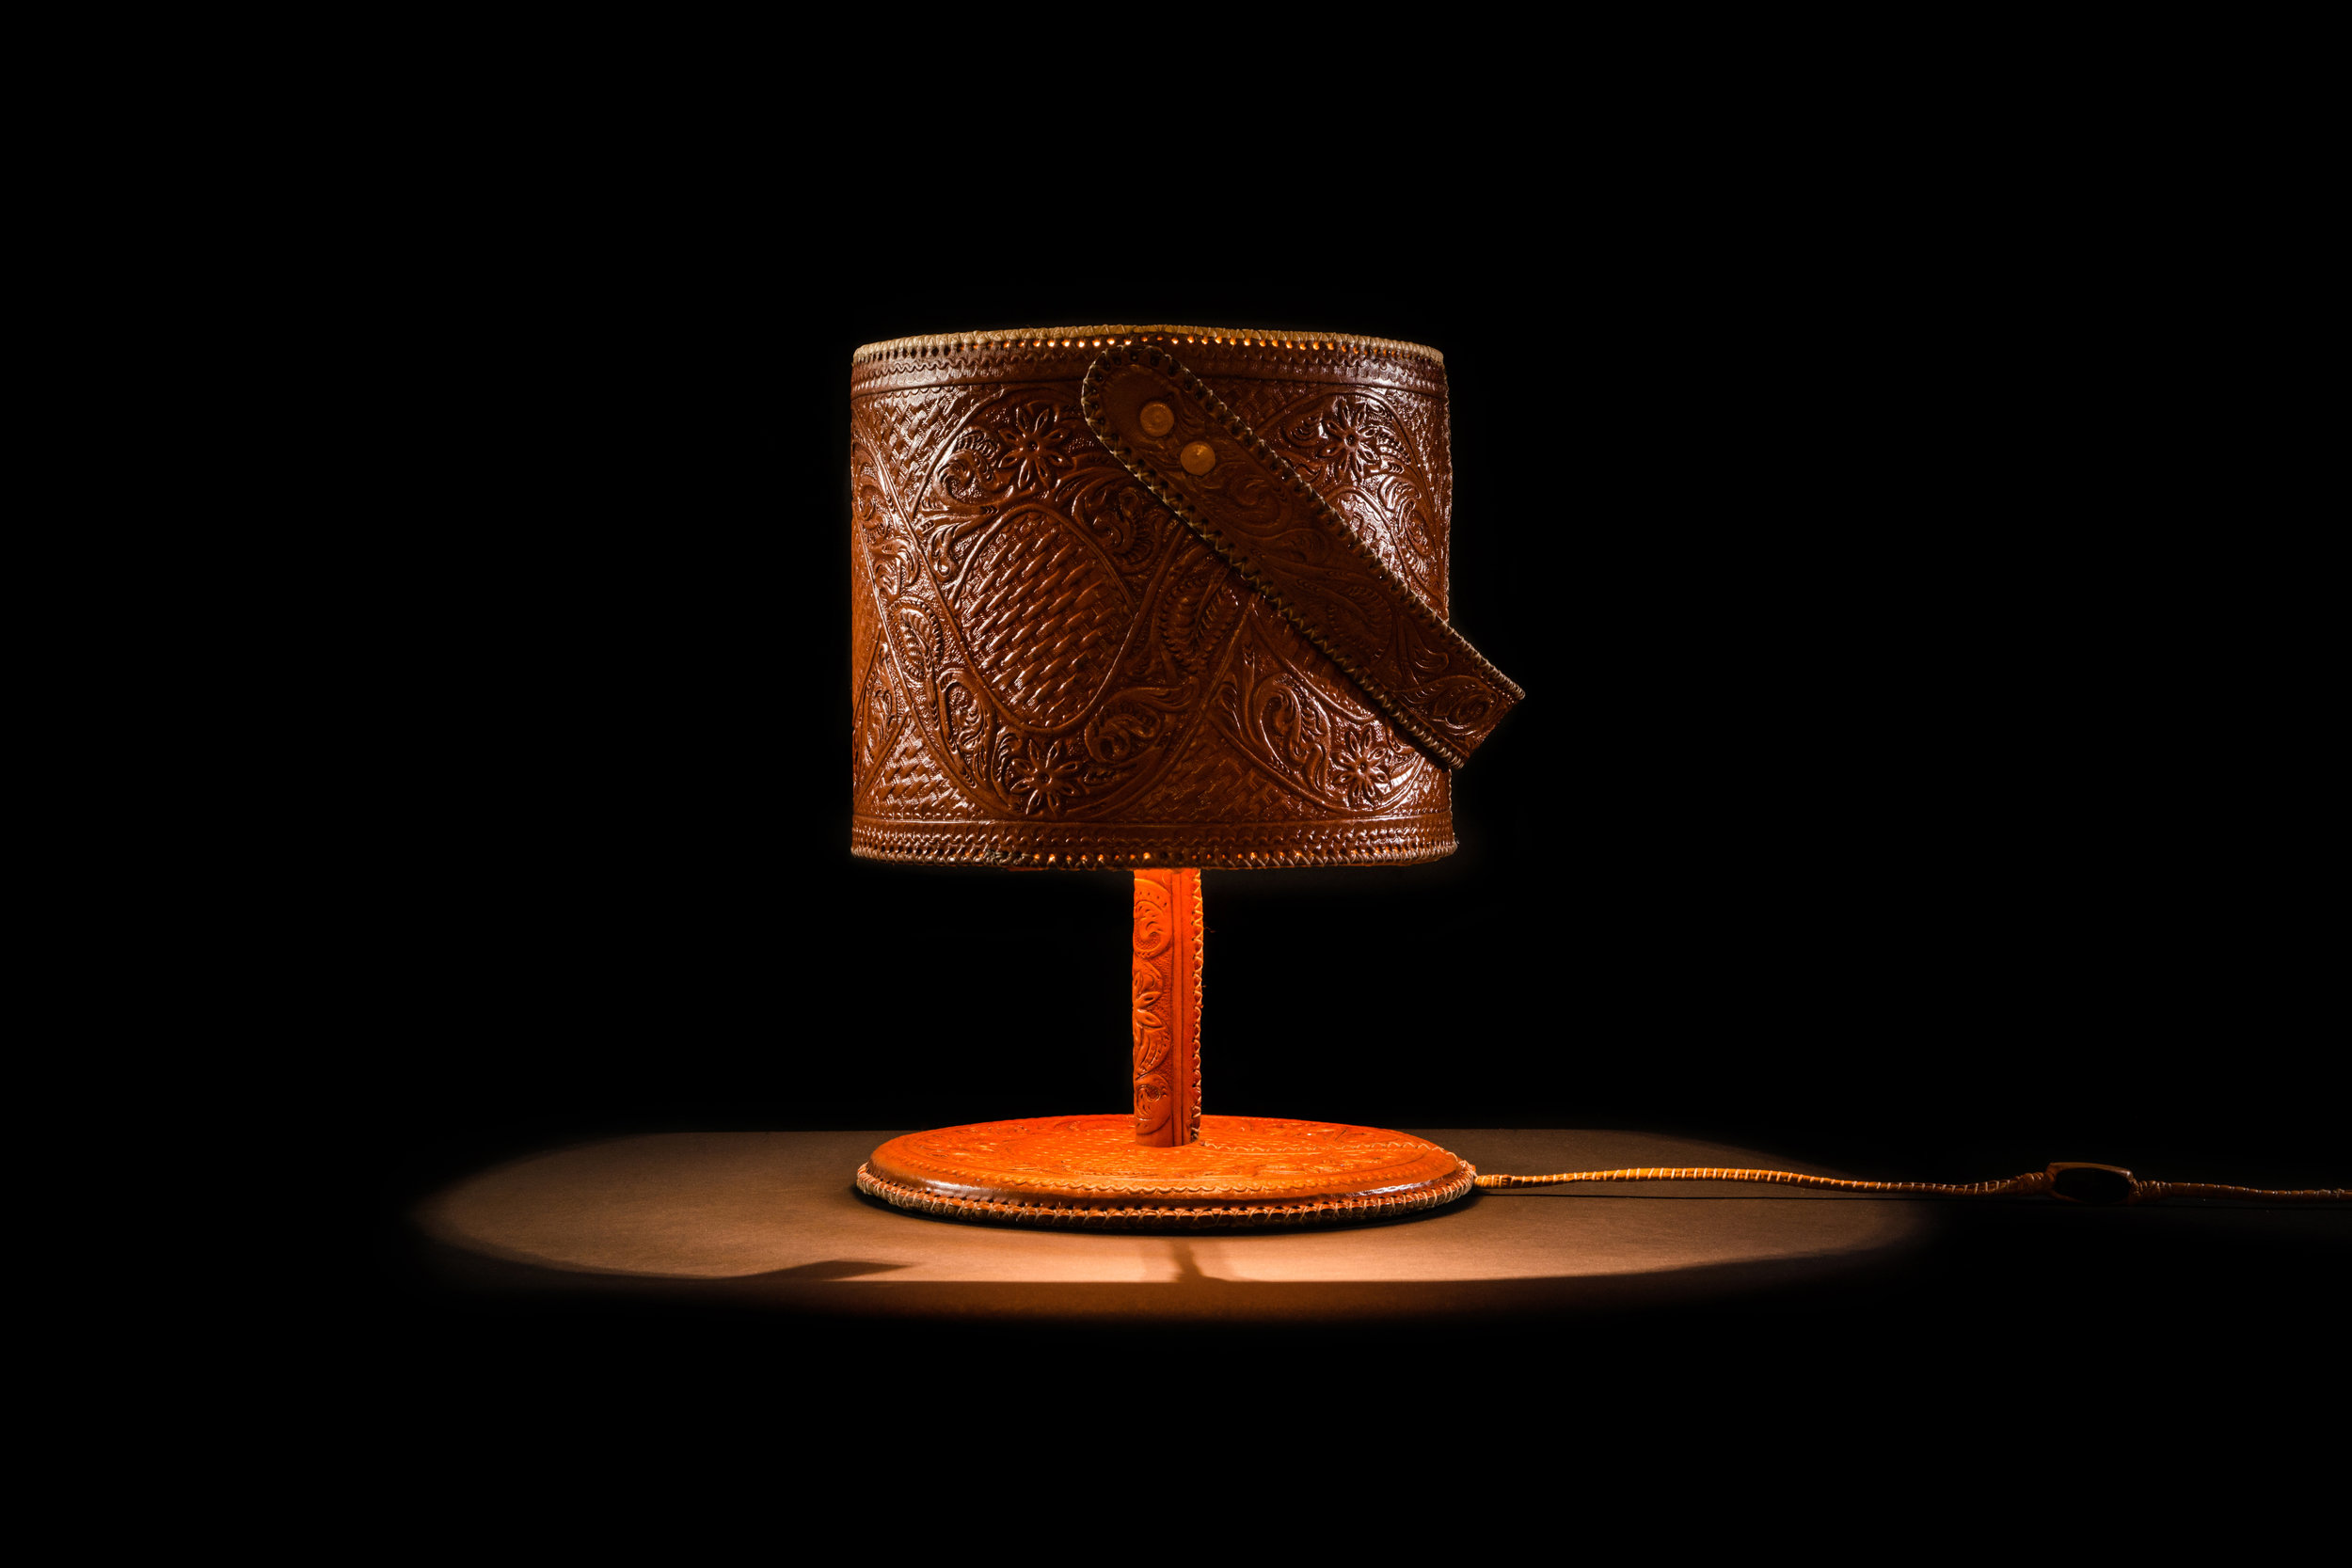 jorge-diego-etienne-chiseled-leather-lamps-8